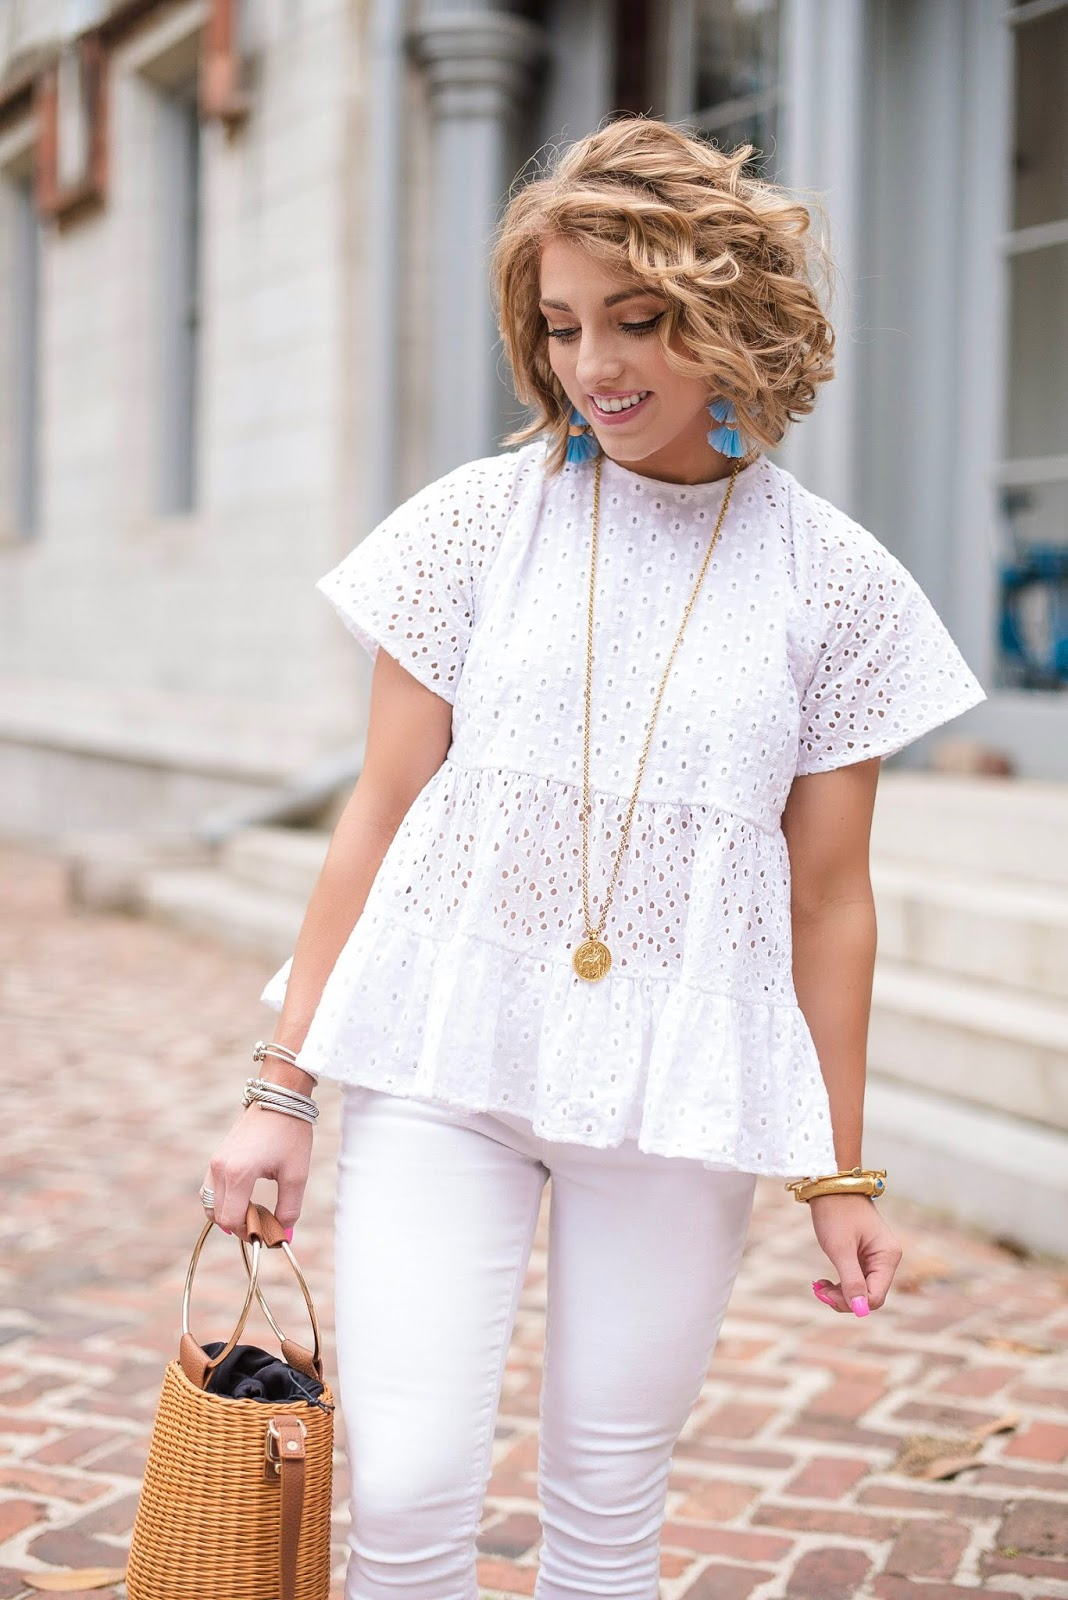 Eyelet Babydoll Top (under $50) + Julie Vos - Something Delightful Blog